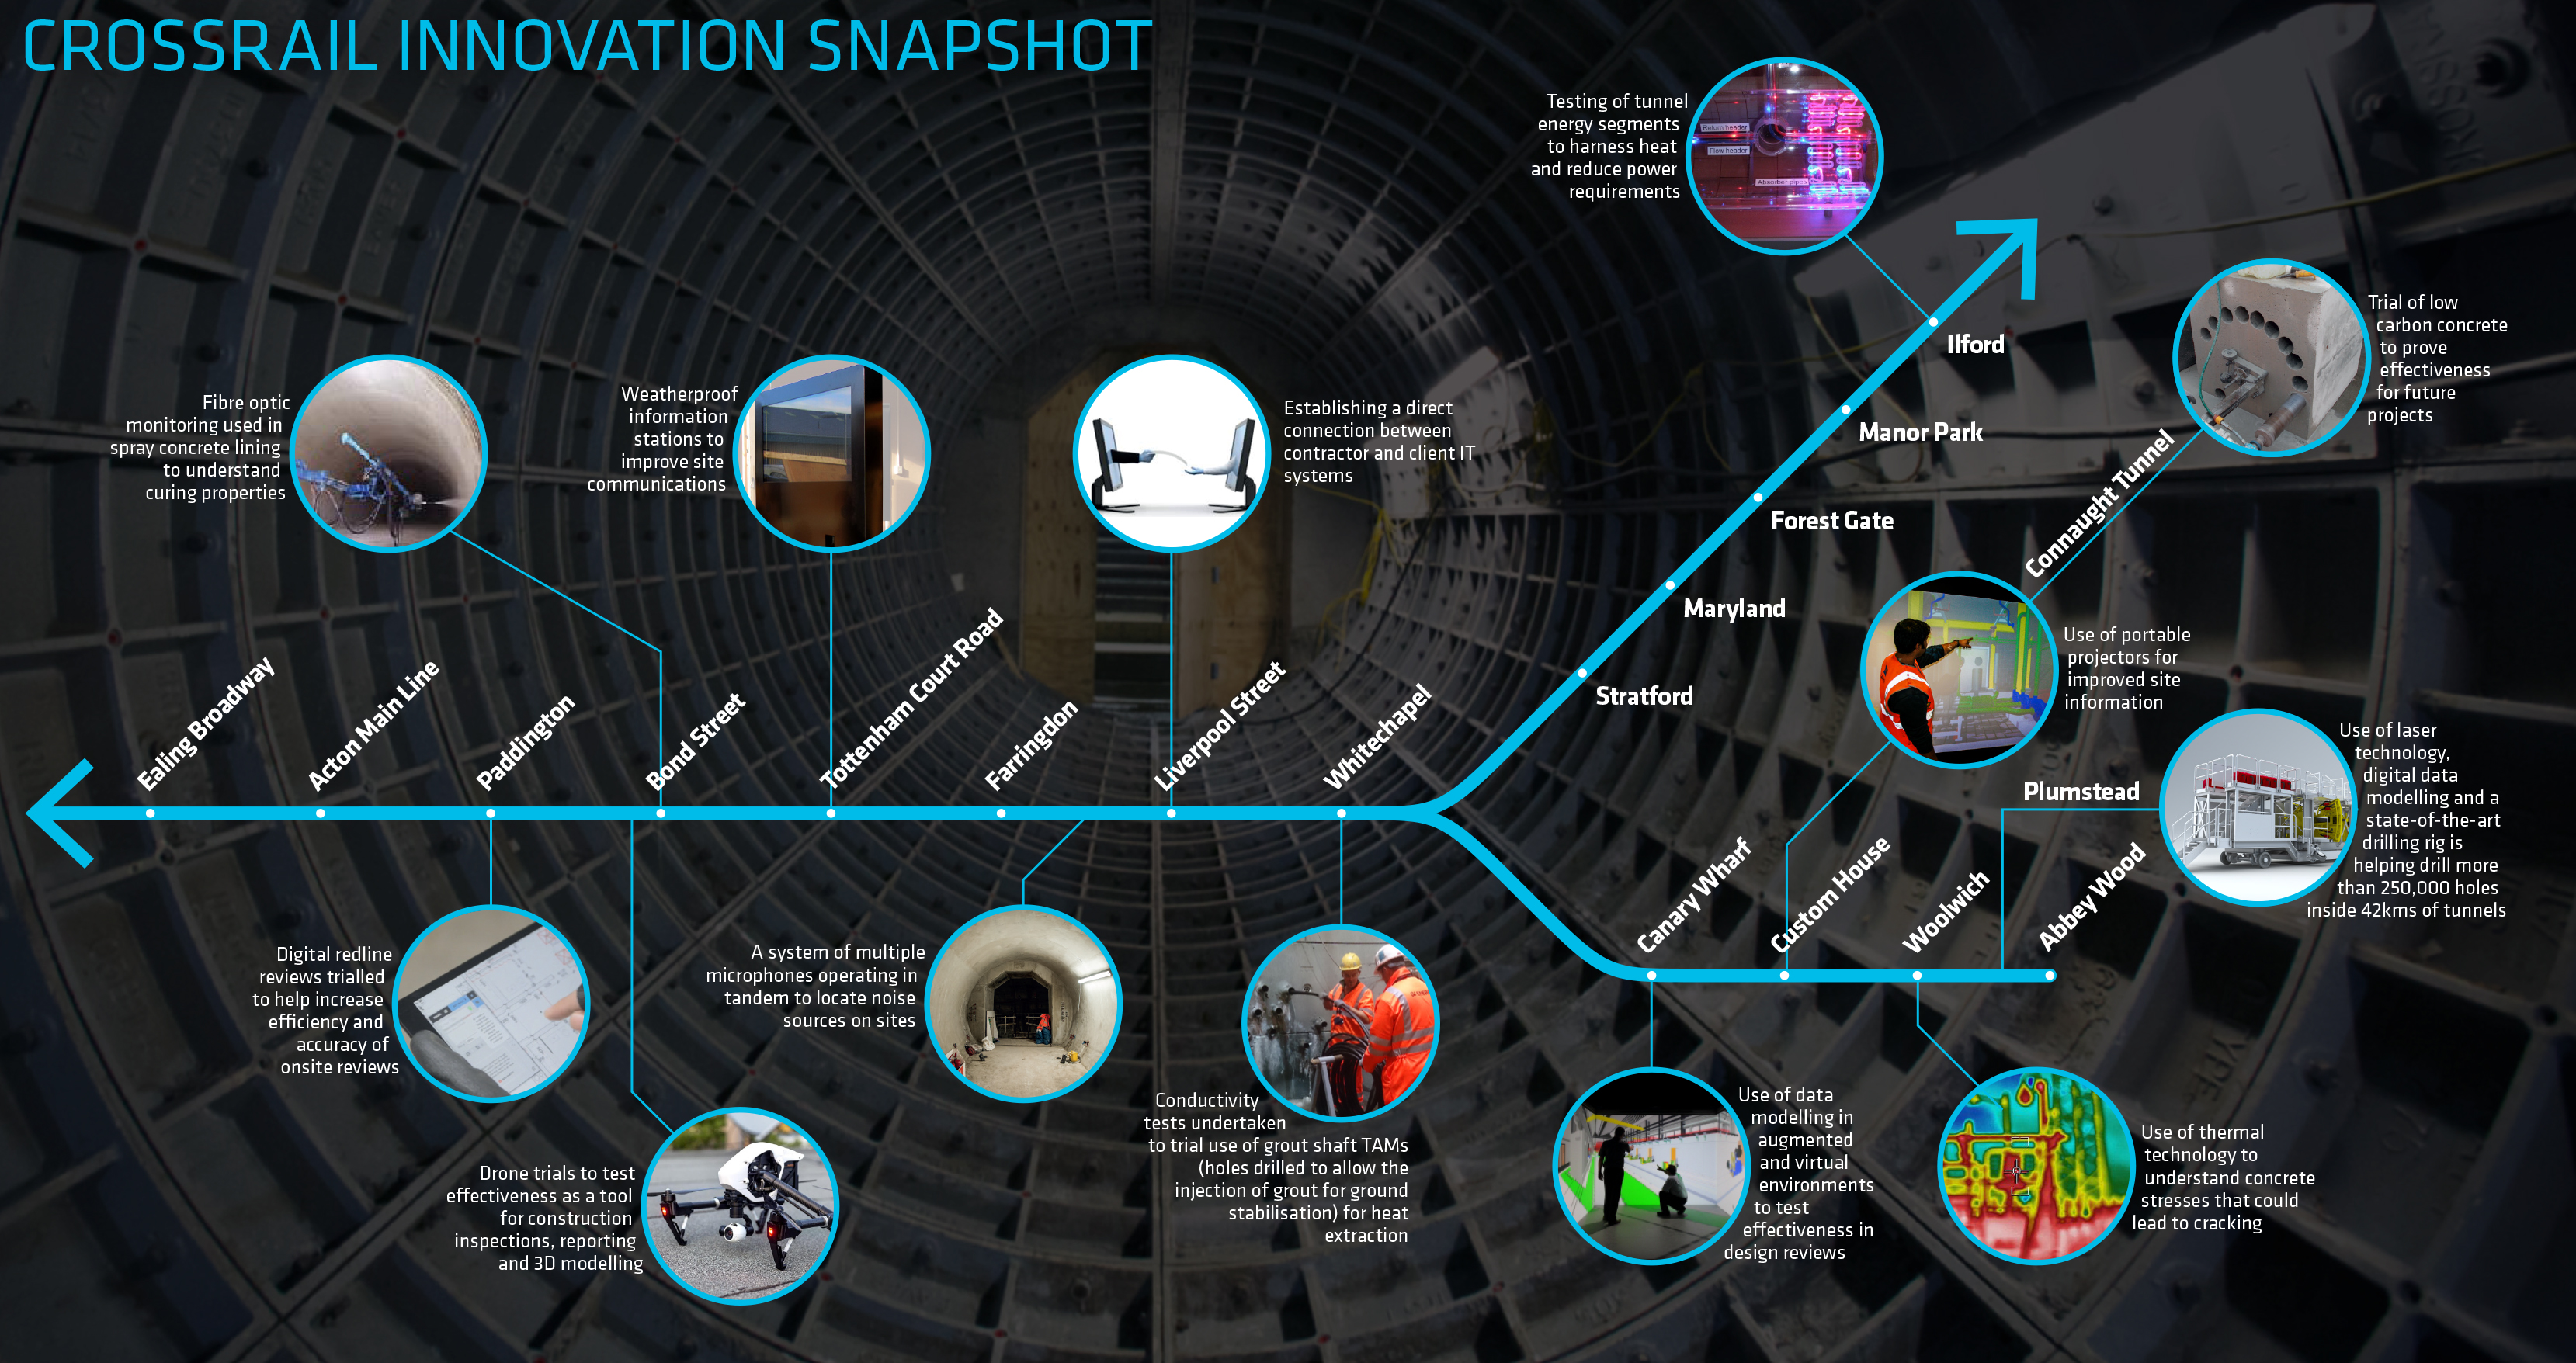 Crossrail innovation and technology snapshot